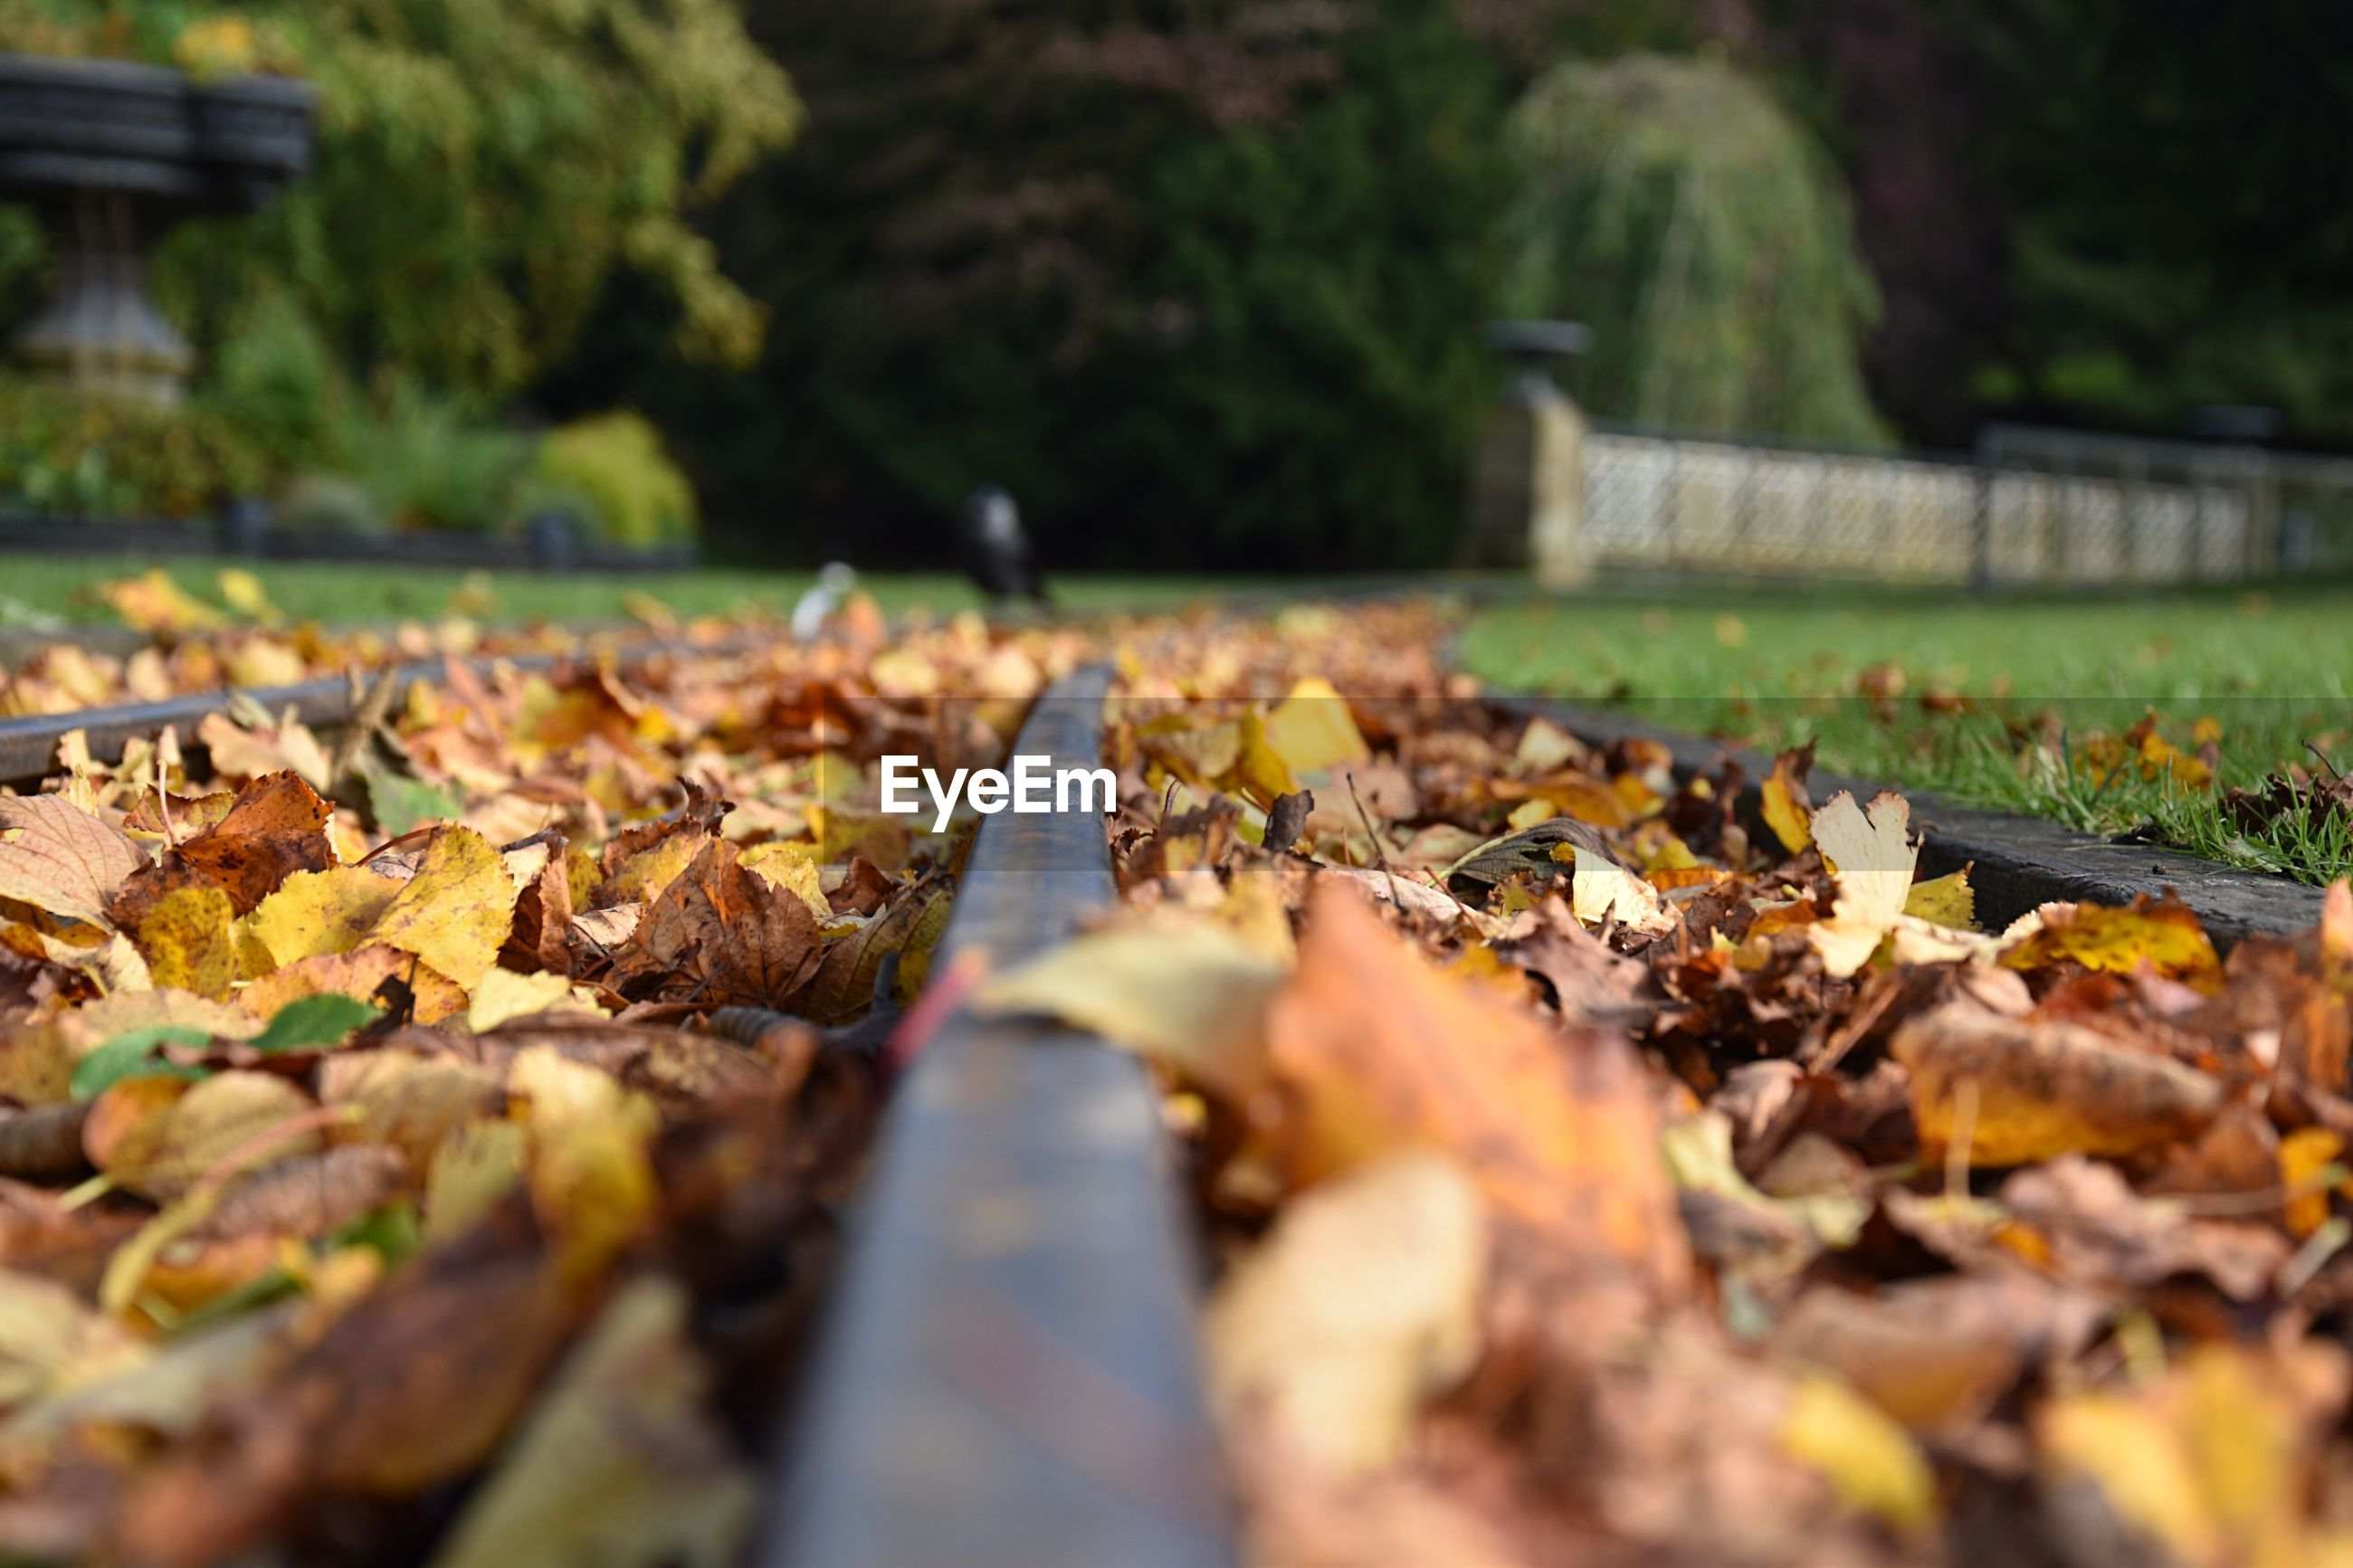 Close-up of fallen leaves in park